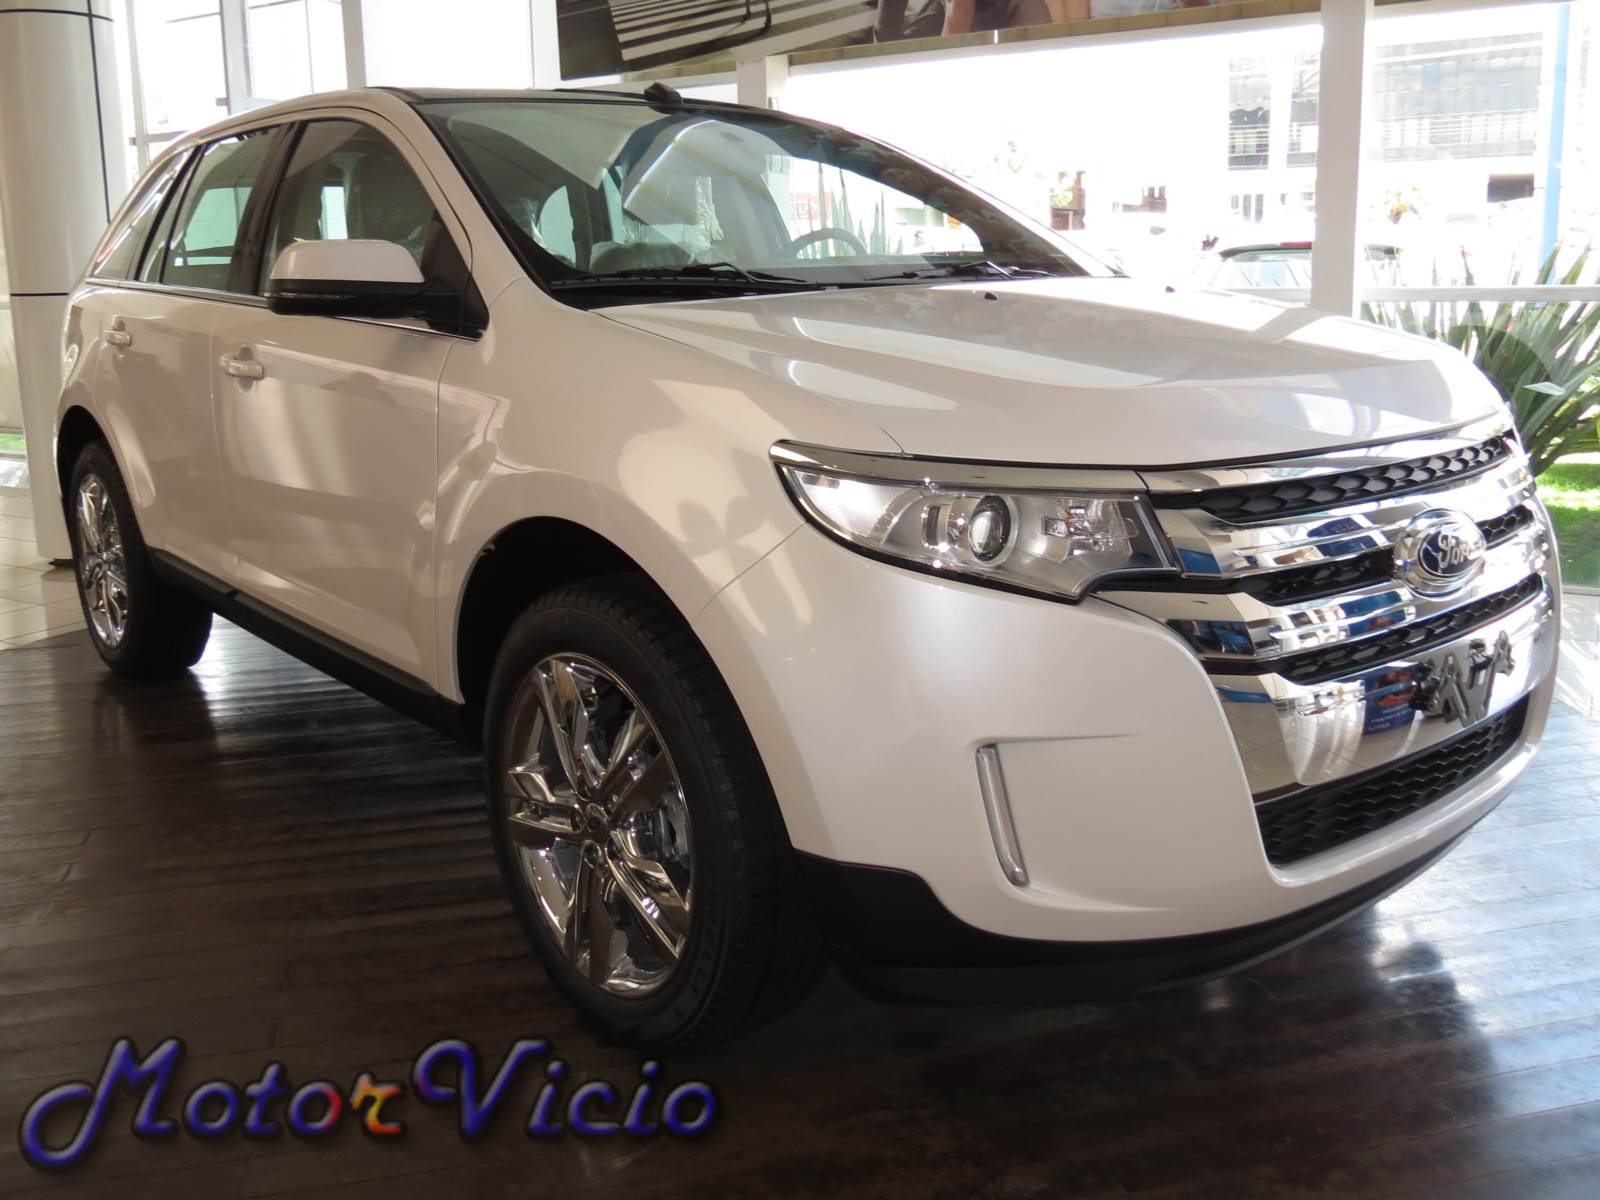 ford edge related images start 350 weili automotive network. Black Bedroom Furniture Sets. Home Design Ideas